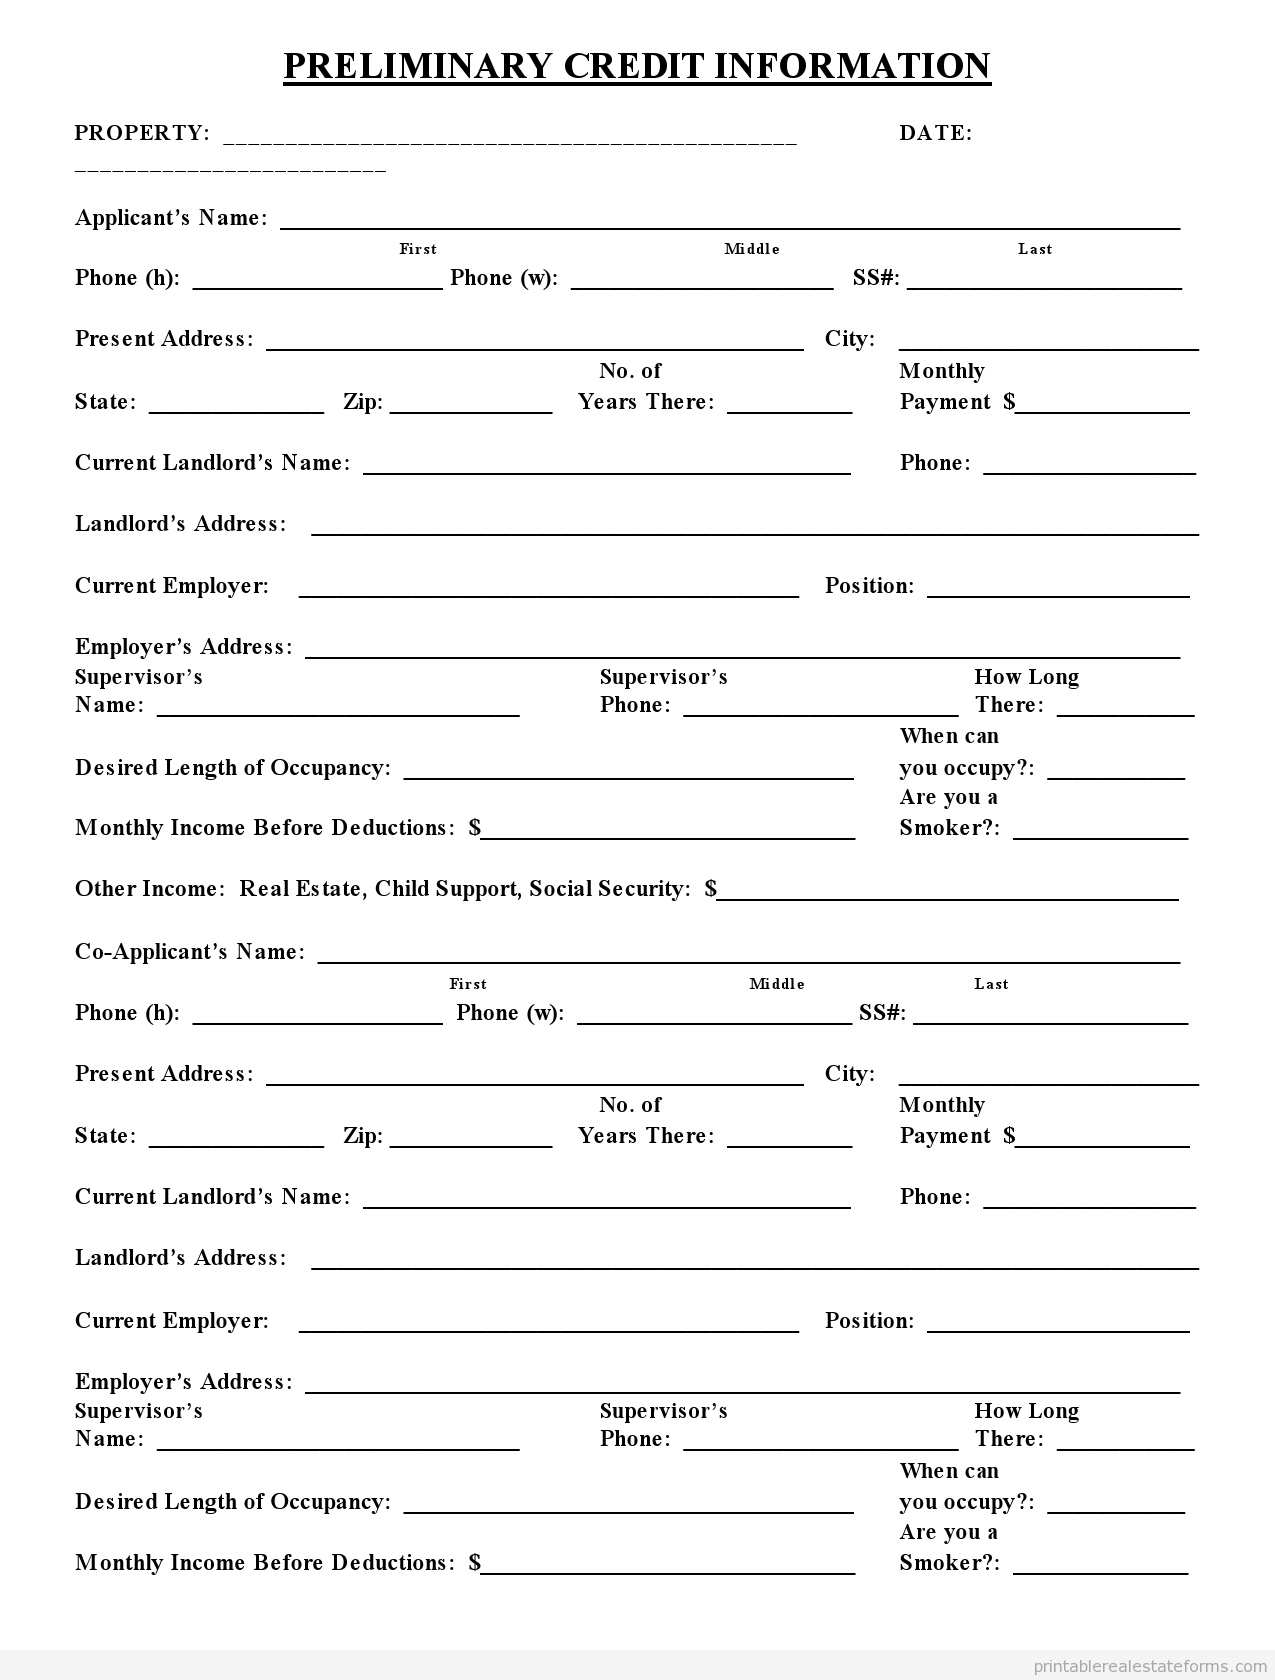 Sample Printable Preliminary Credit Application  Form  Printable